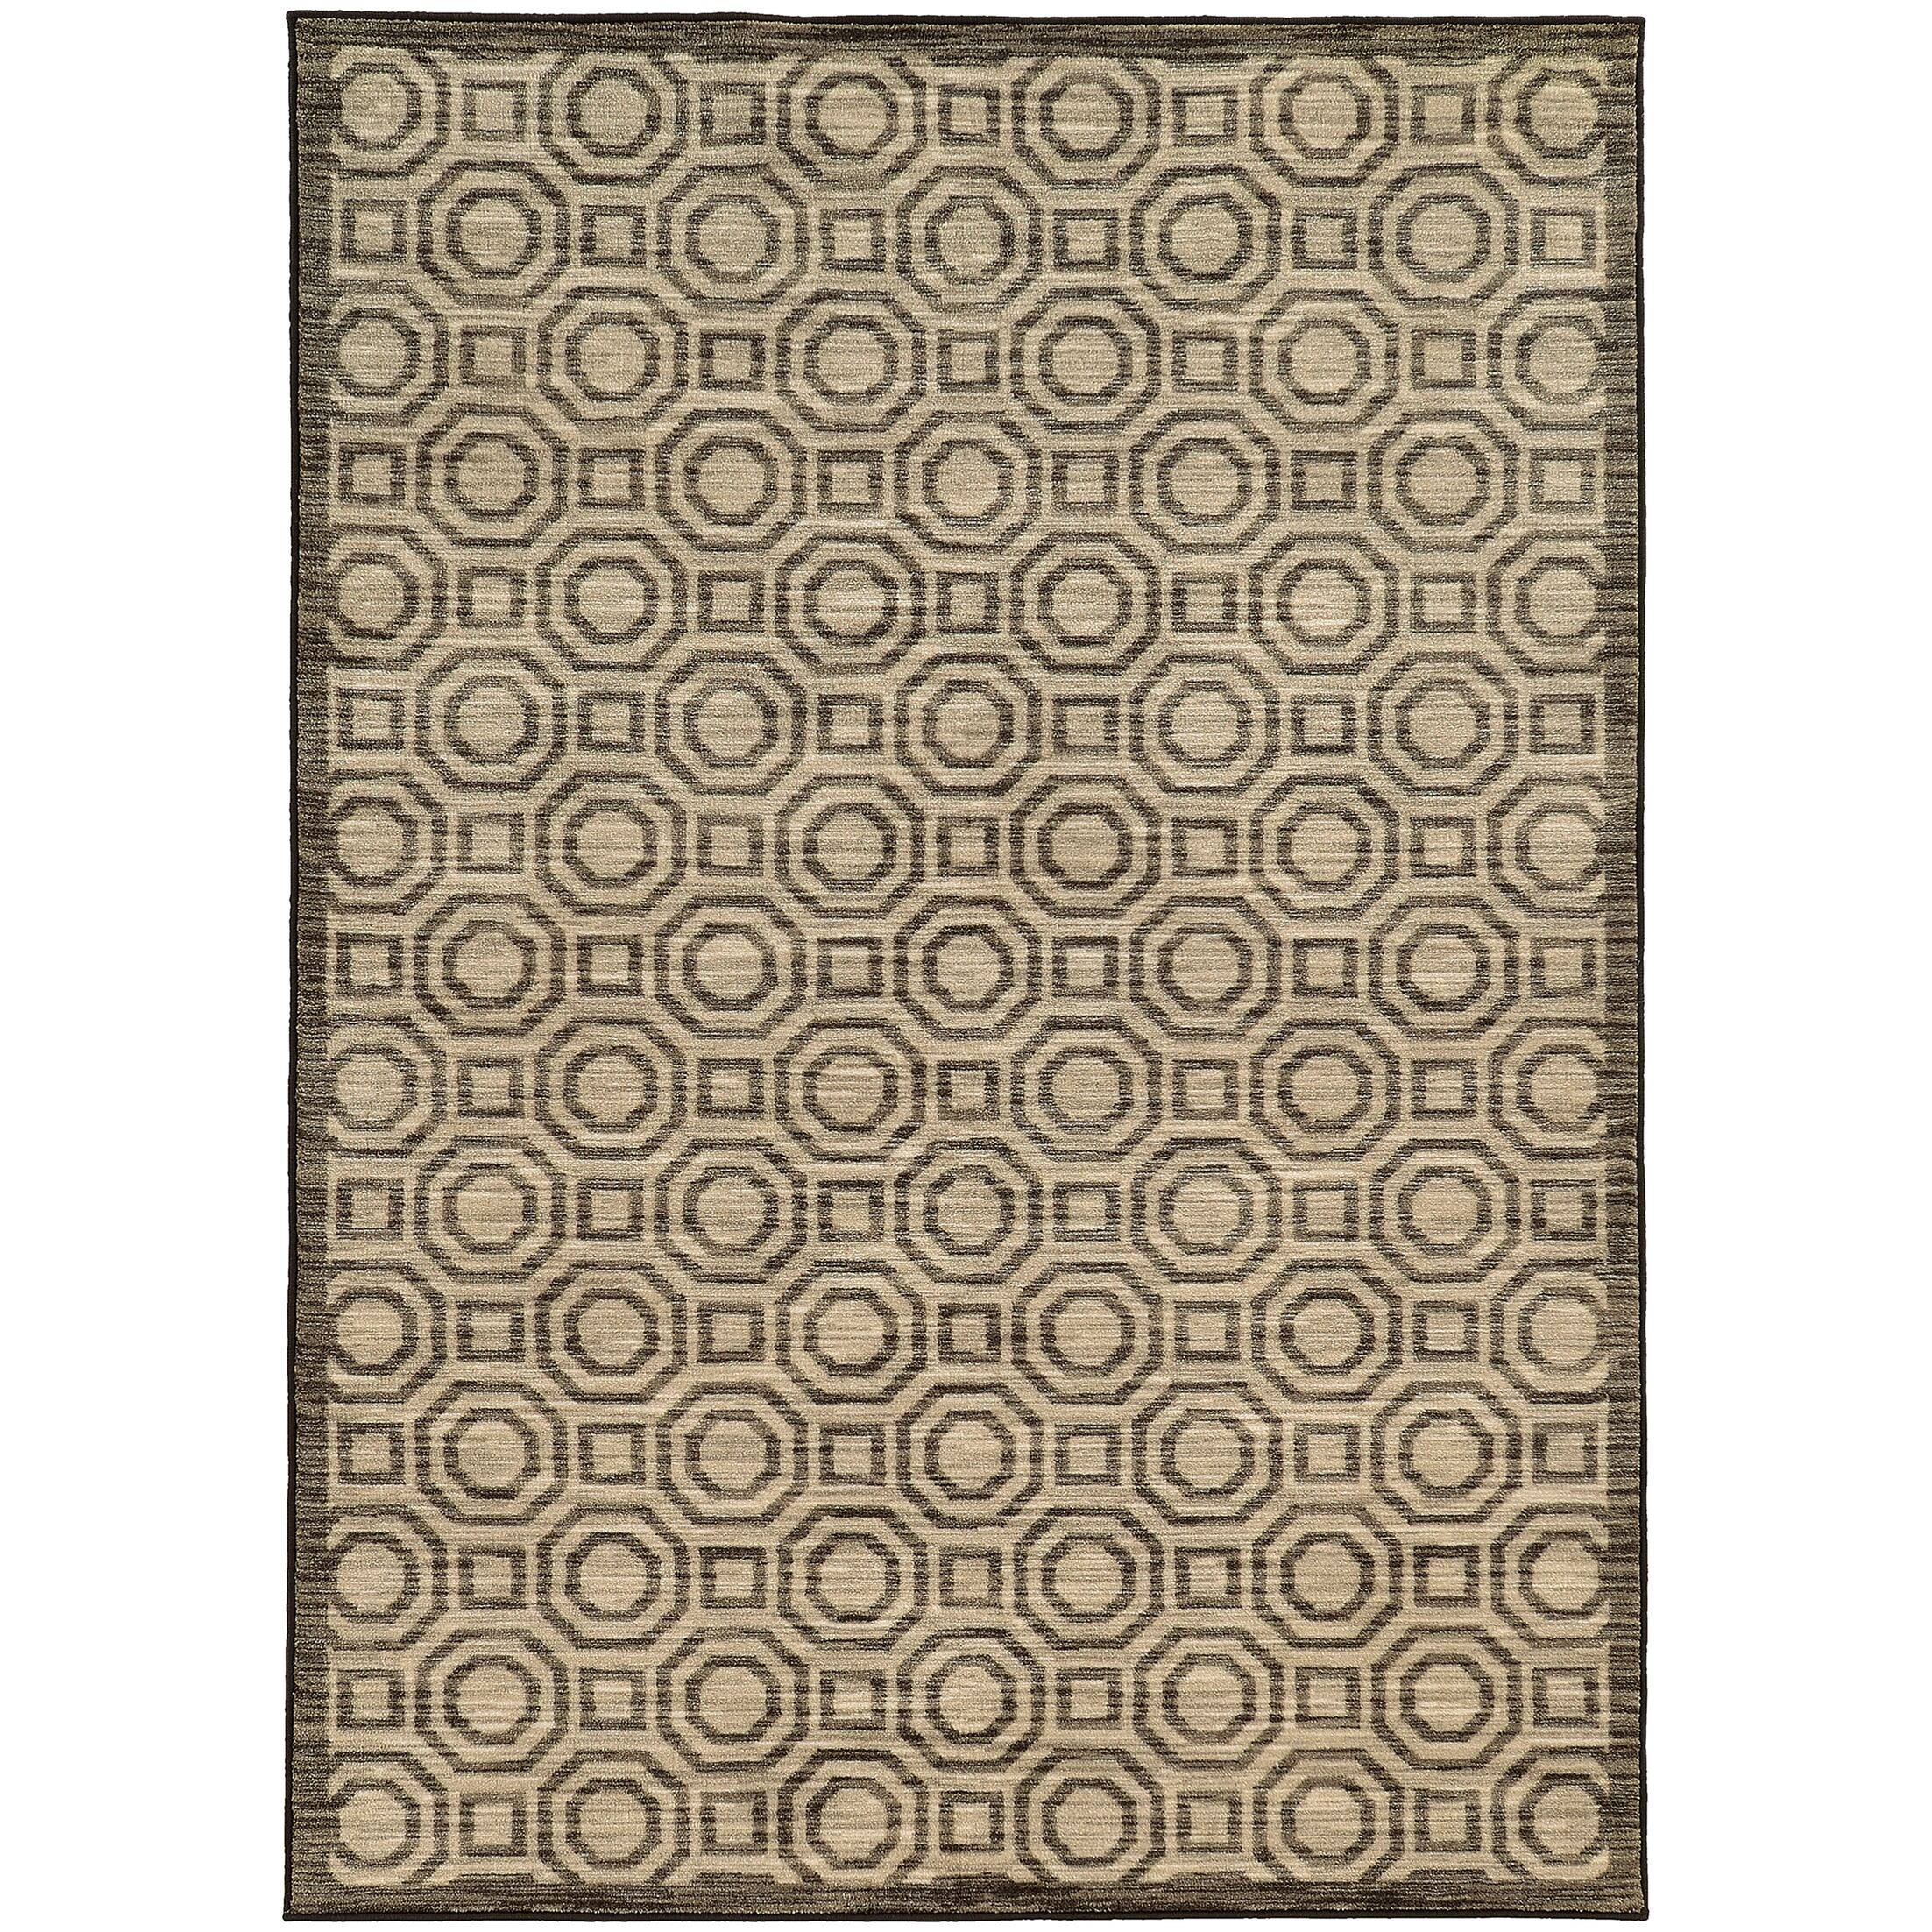 Abbas Geometric Charcoal/Grey Area Rug Rug Size: Rectangle 6'7